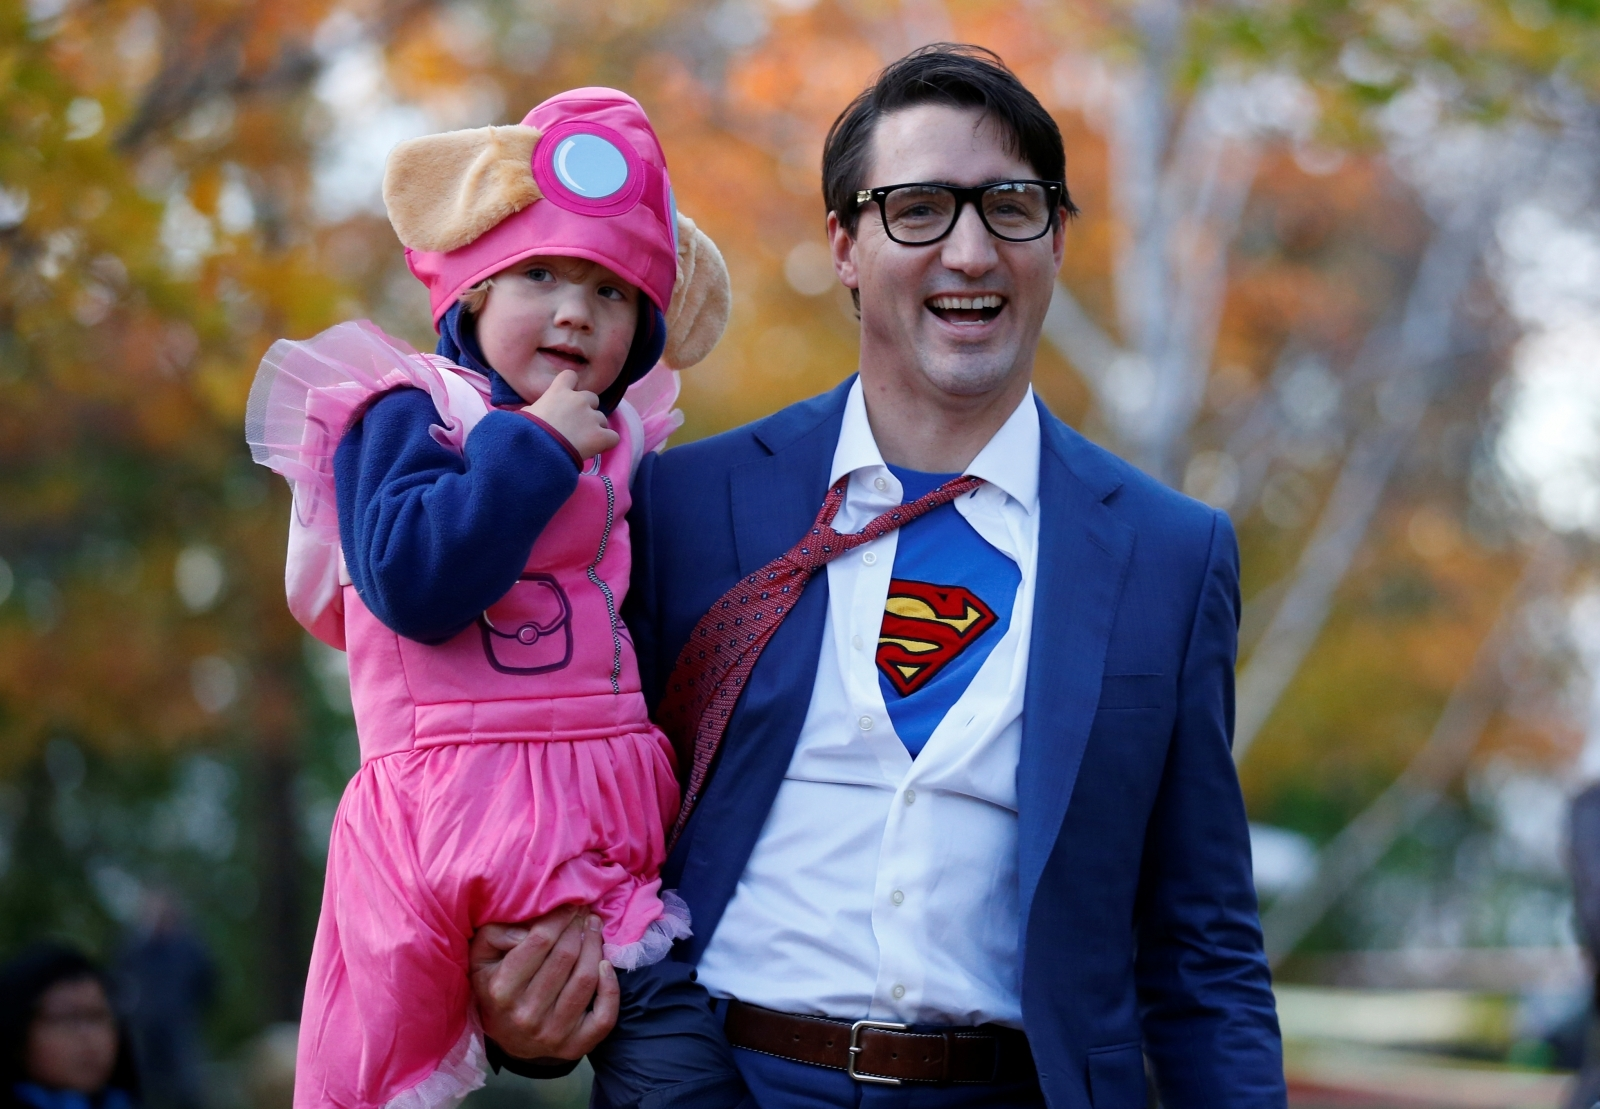 Twitter Goes Into Meltdown After Justin Trudeau Rips Open His Shirt To Reveal Halloween Costume